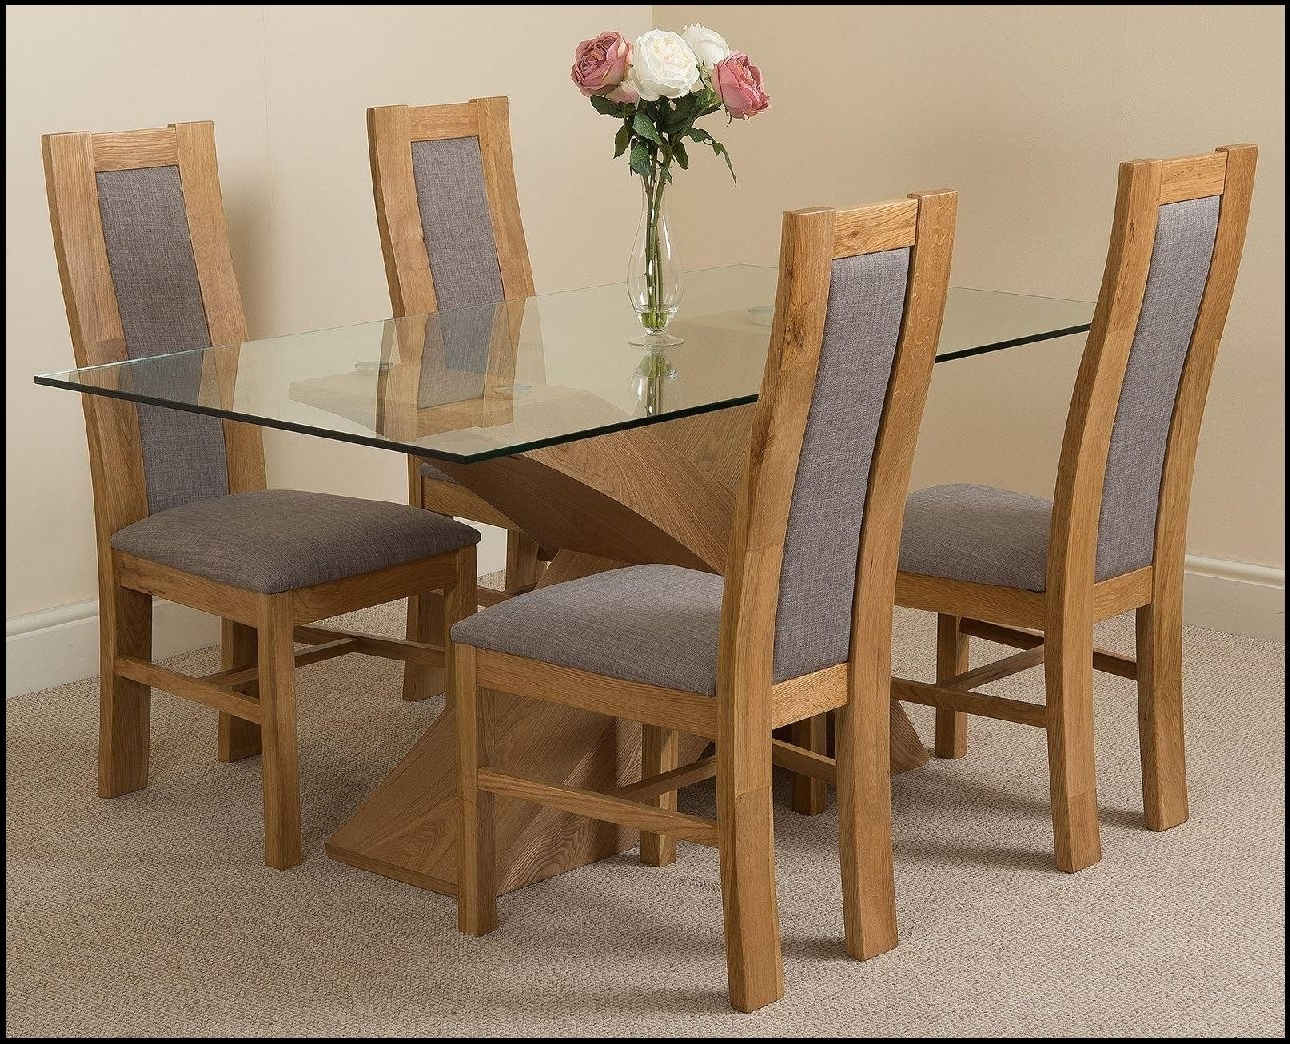 Most Popular Wonderfull Cube Oak 160 Cm Dining Table And 6 Chairs Quercus Living Pertaining To Glass And Oak Dining Tables And Chairs (View 15 of 25)